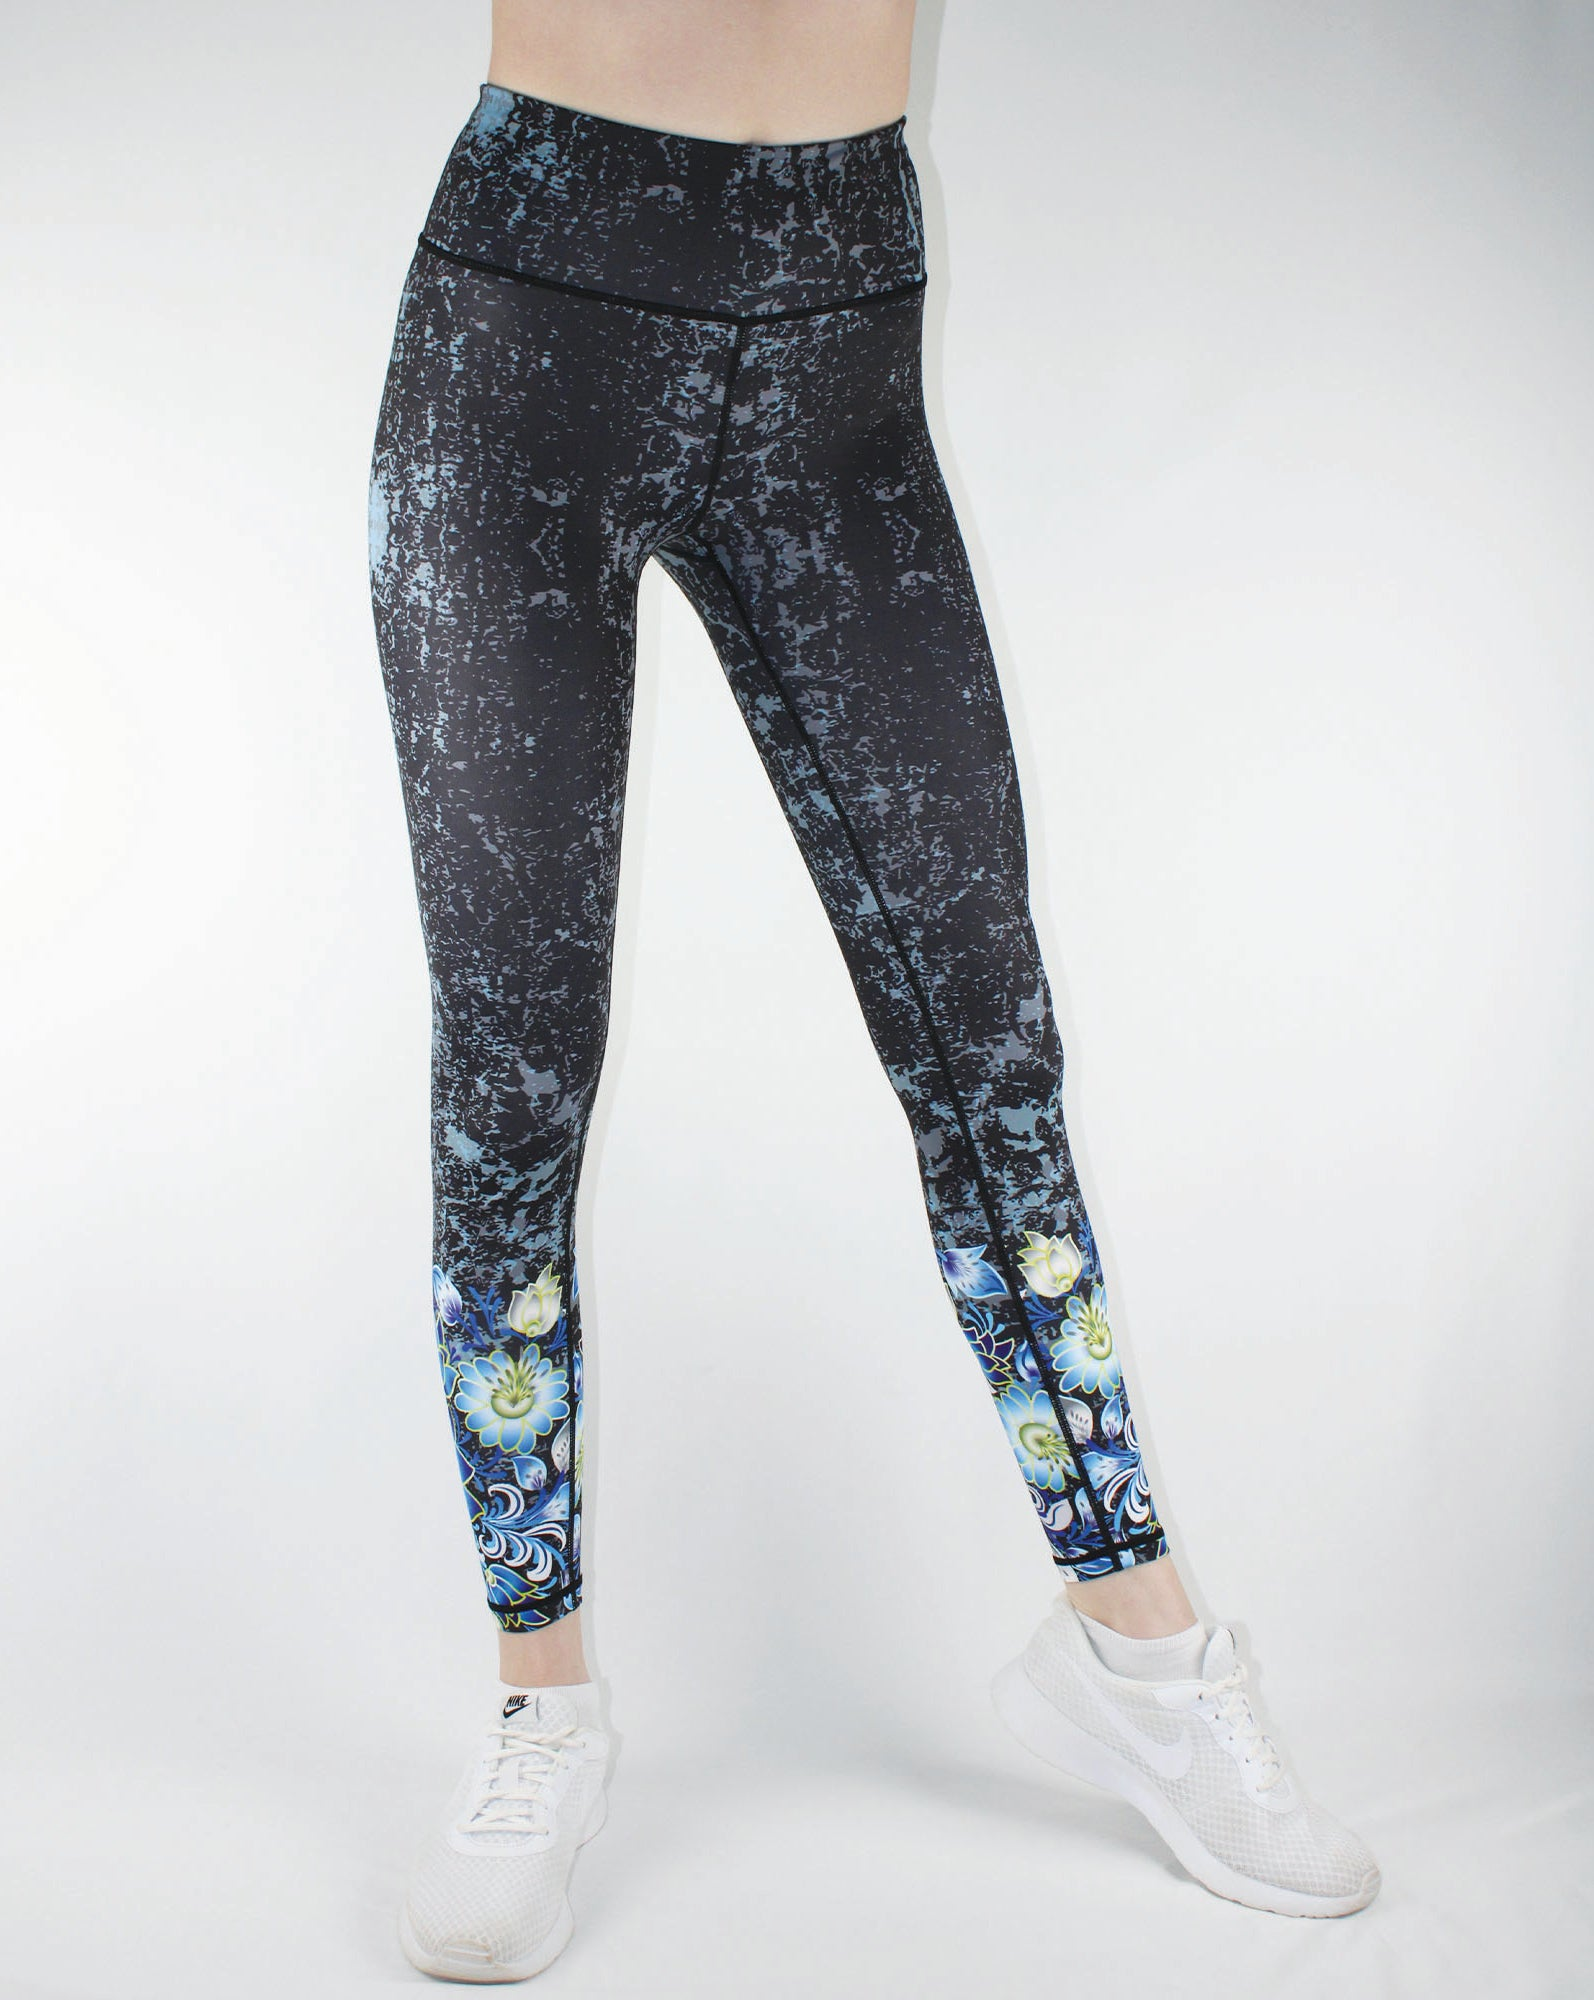 DAISY FLOWER SCUPLT SUPERSOFT WOMEN'S LEGGINGS-INSPIRA COLLECTION